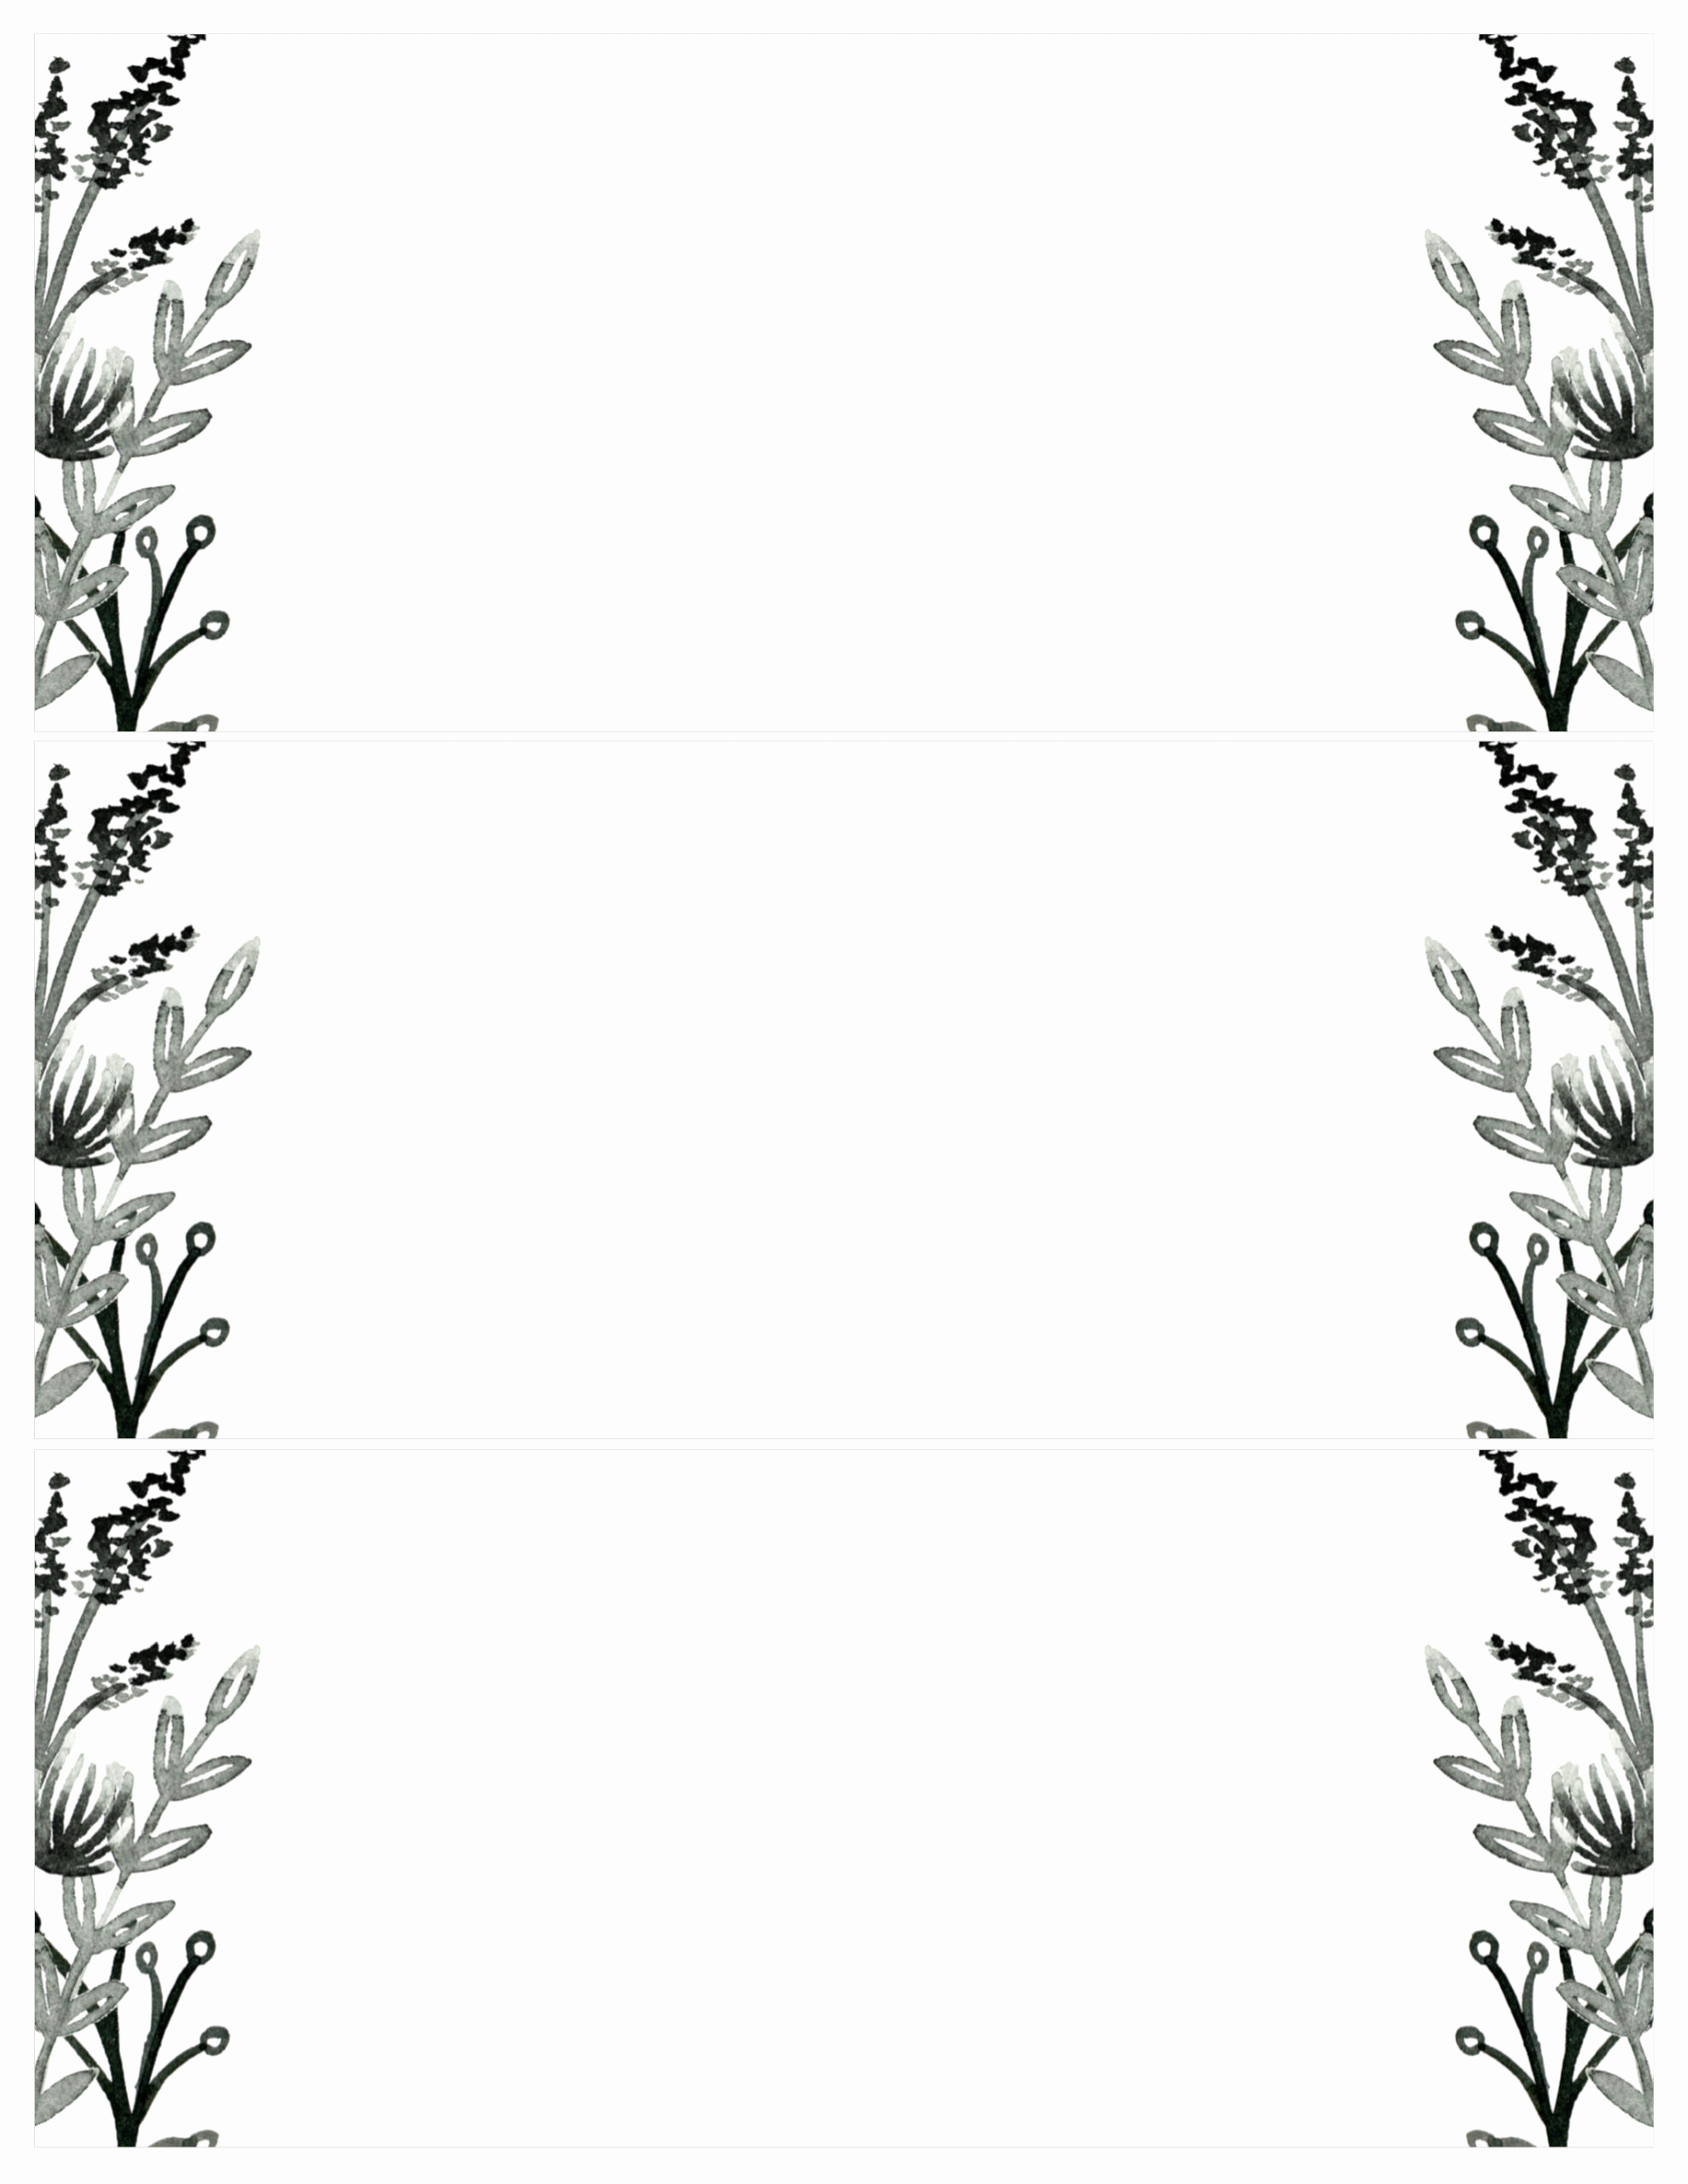 Free Printable Invitations Templates Lovely Black White Flowers Invitations Templates Free Printable